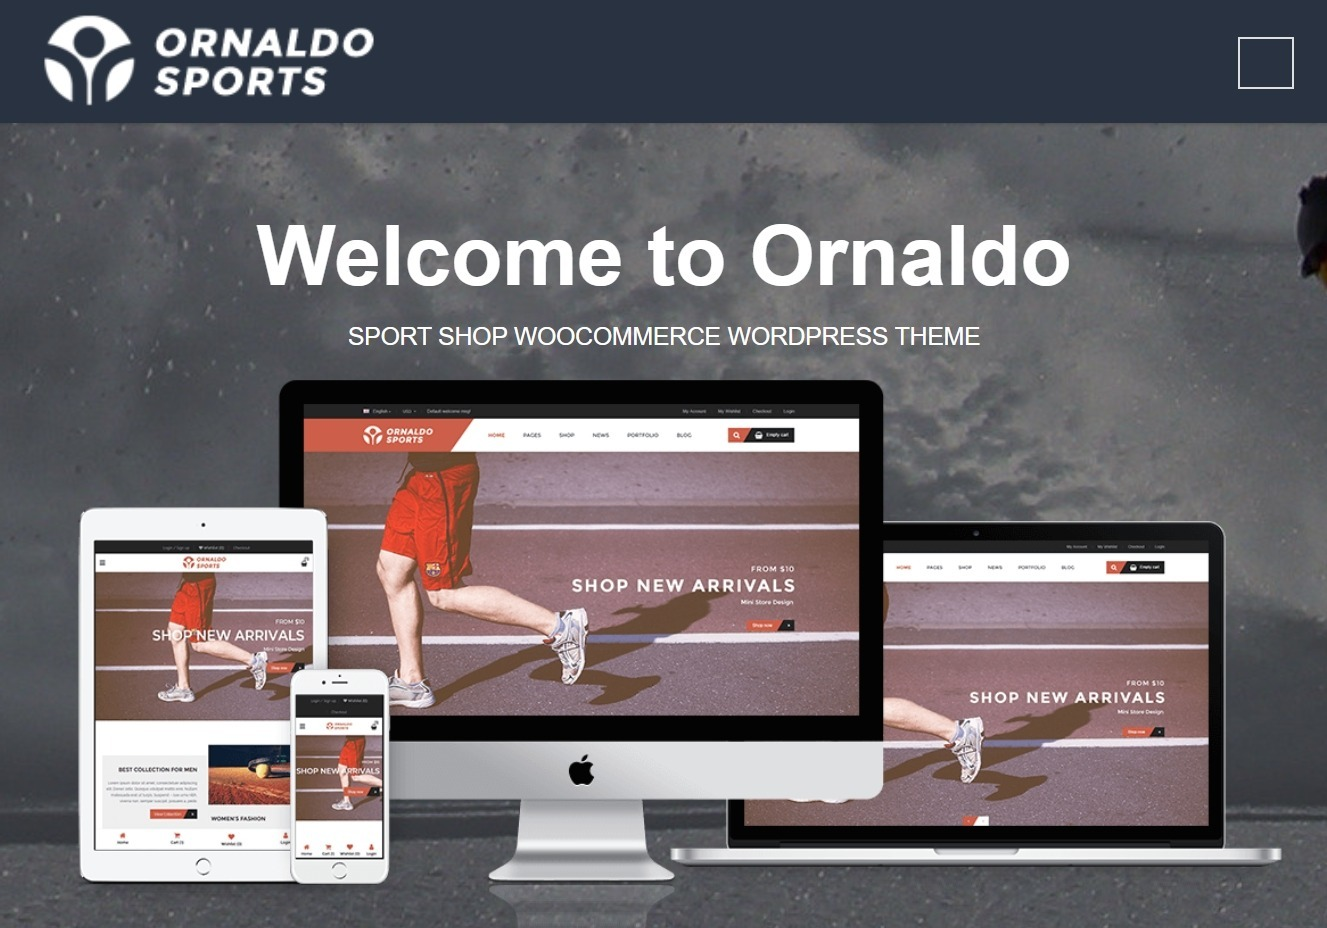 Ornaldo Sport Shop WooCommerce WordPress Theme